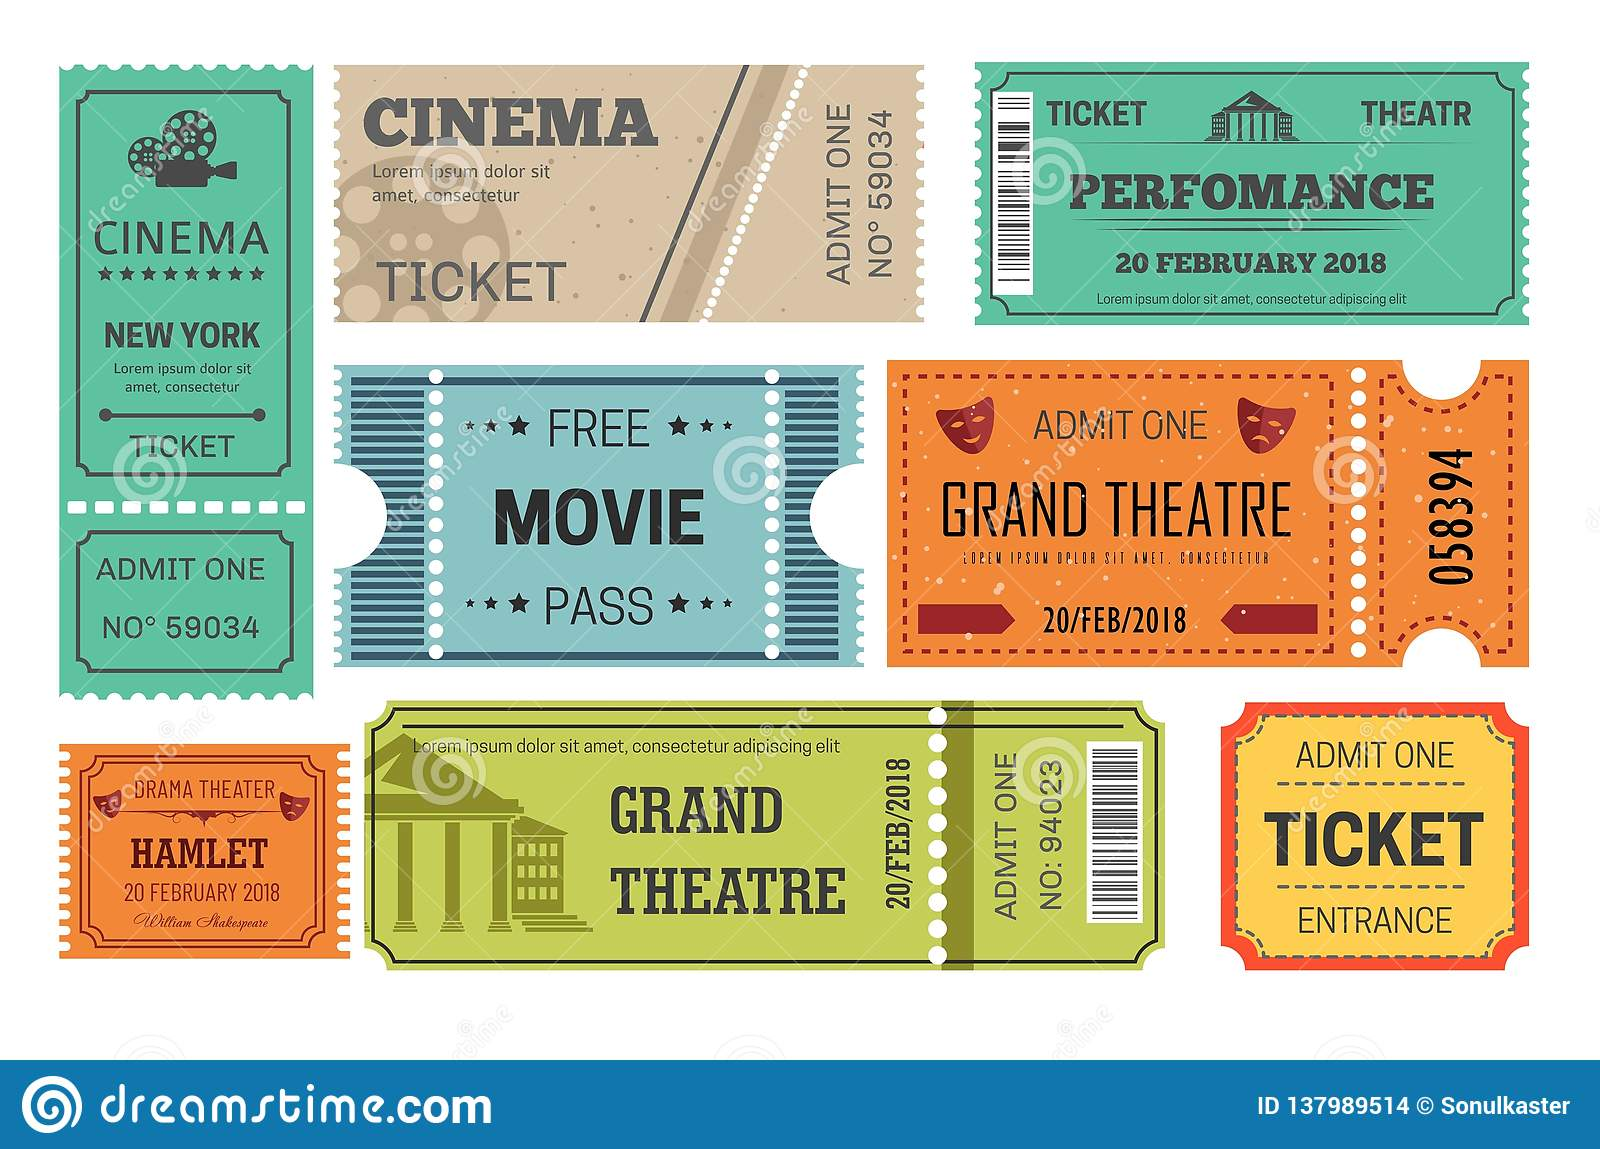 Ticket cinema and theatre admission or paper pass